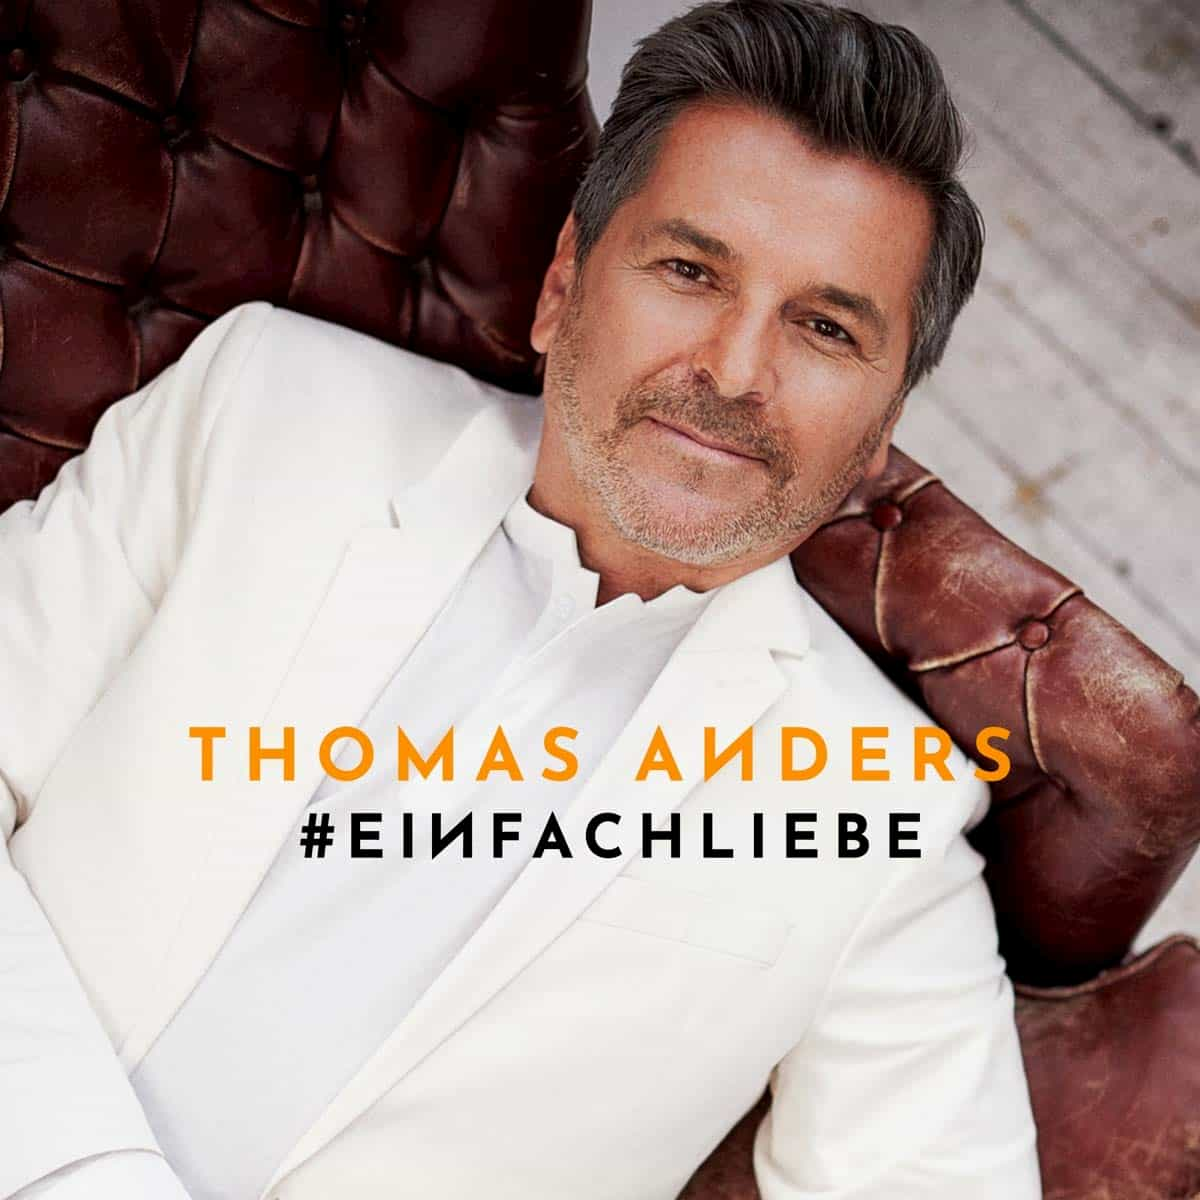 Thomas Anders CD 2020 - Einfach Liebe